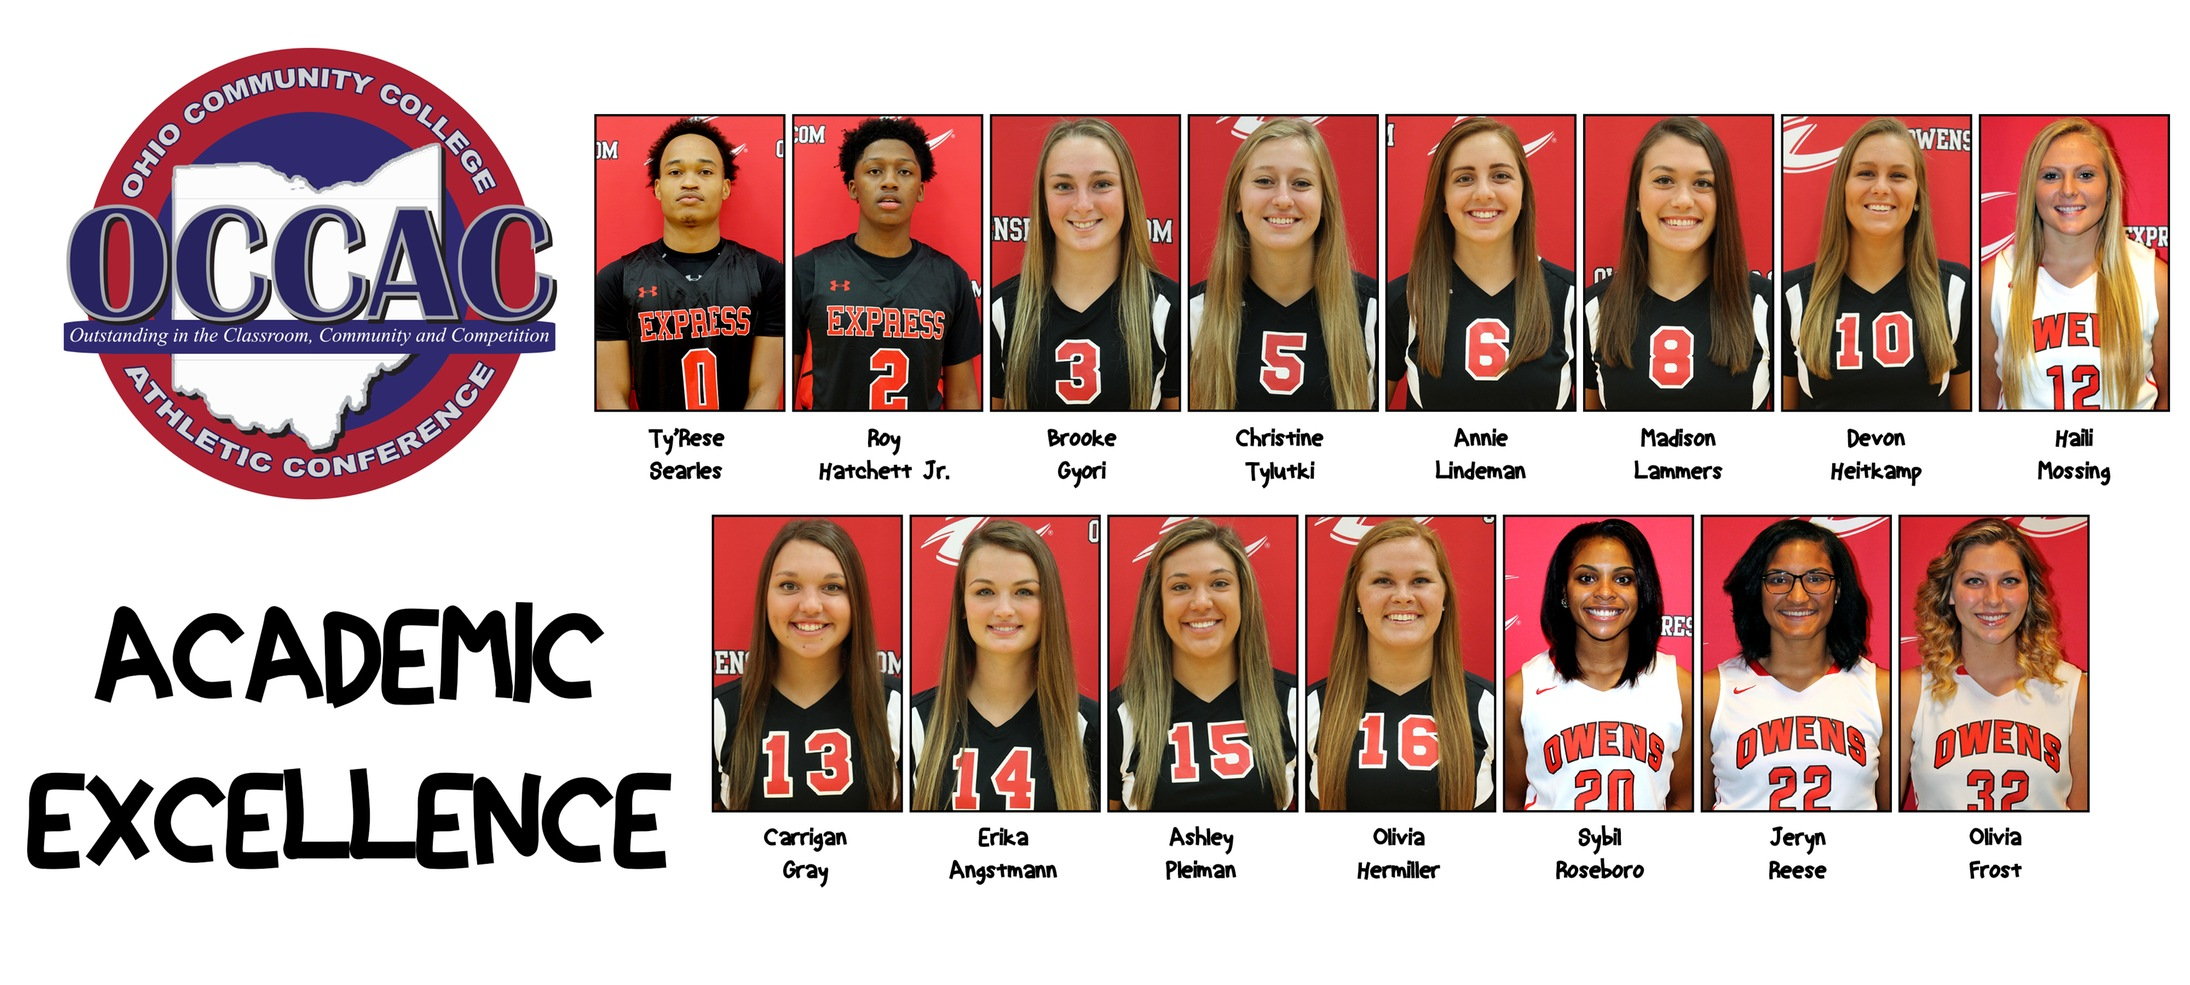 15 Owens Student-Athletes Land Spot On OCCAC's Spring All-Academic Team